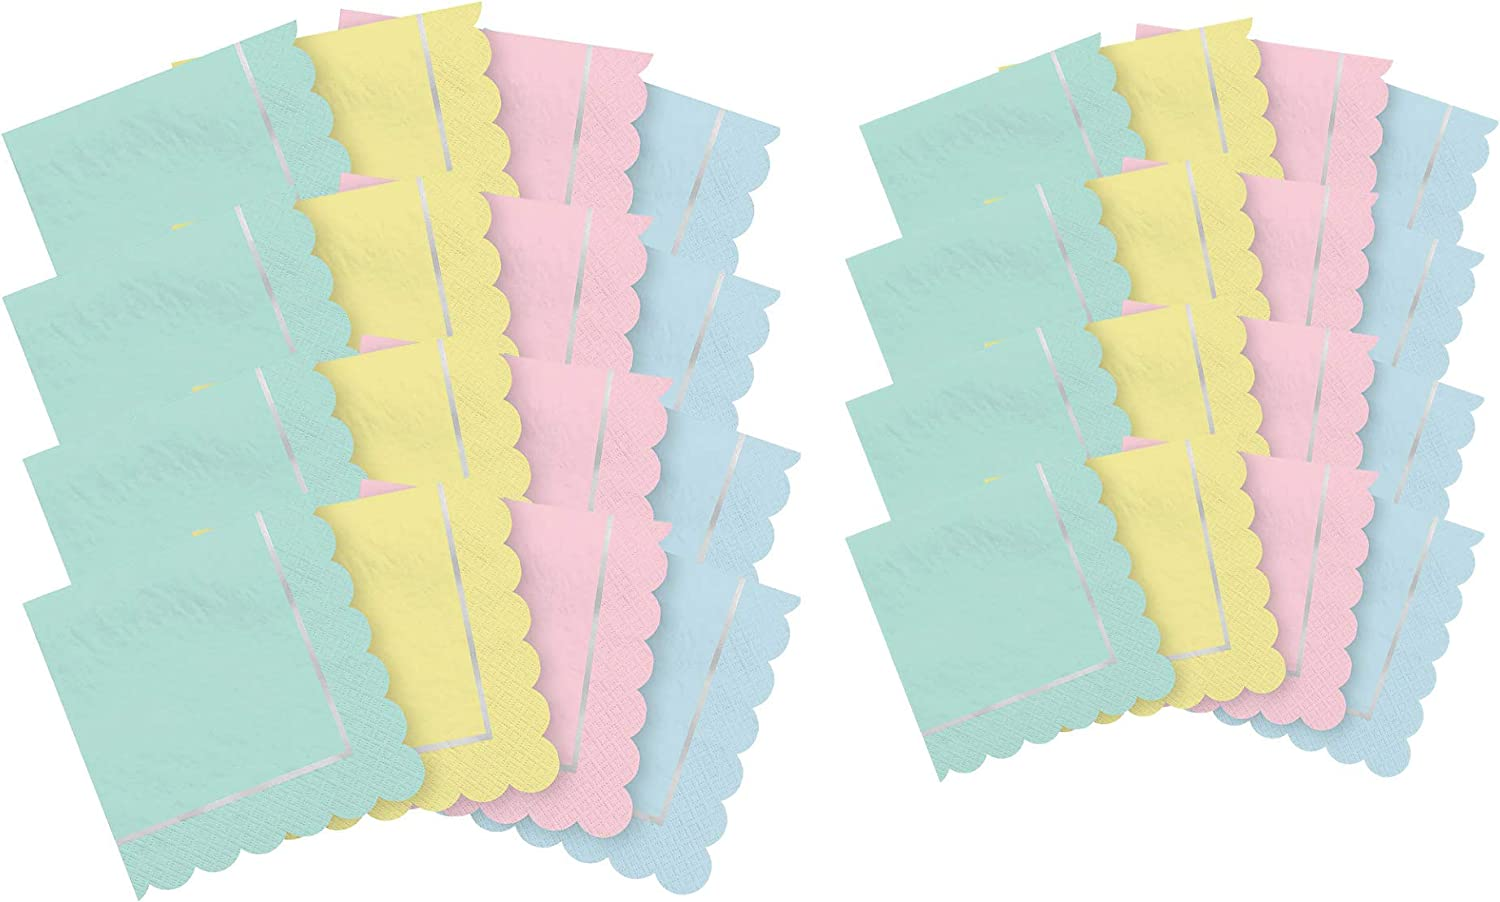 Pastel Party Supplies - Napkins for 16 Includes Beverage and Lunch Napkins in Mint, Pink, Blue, and Yellow Pastels with Scalloped Edge on Two Sides and Silver Foil Trim